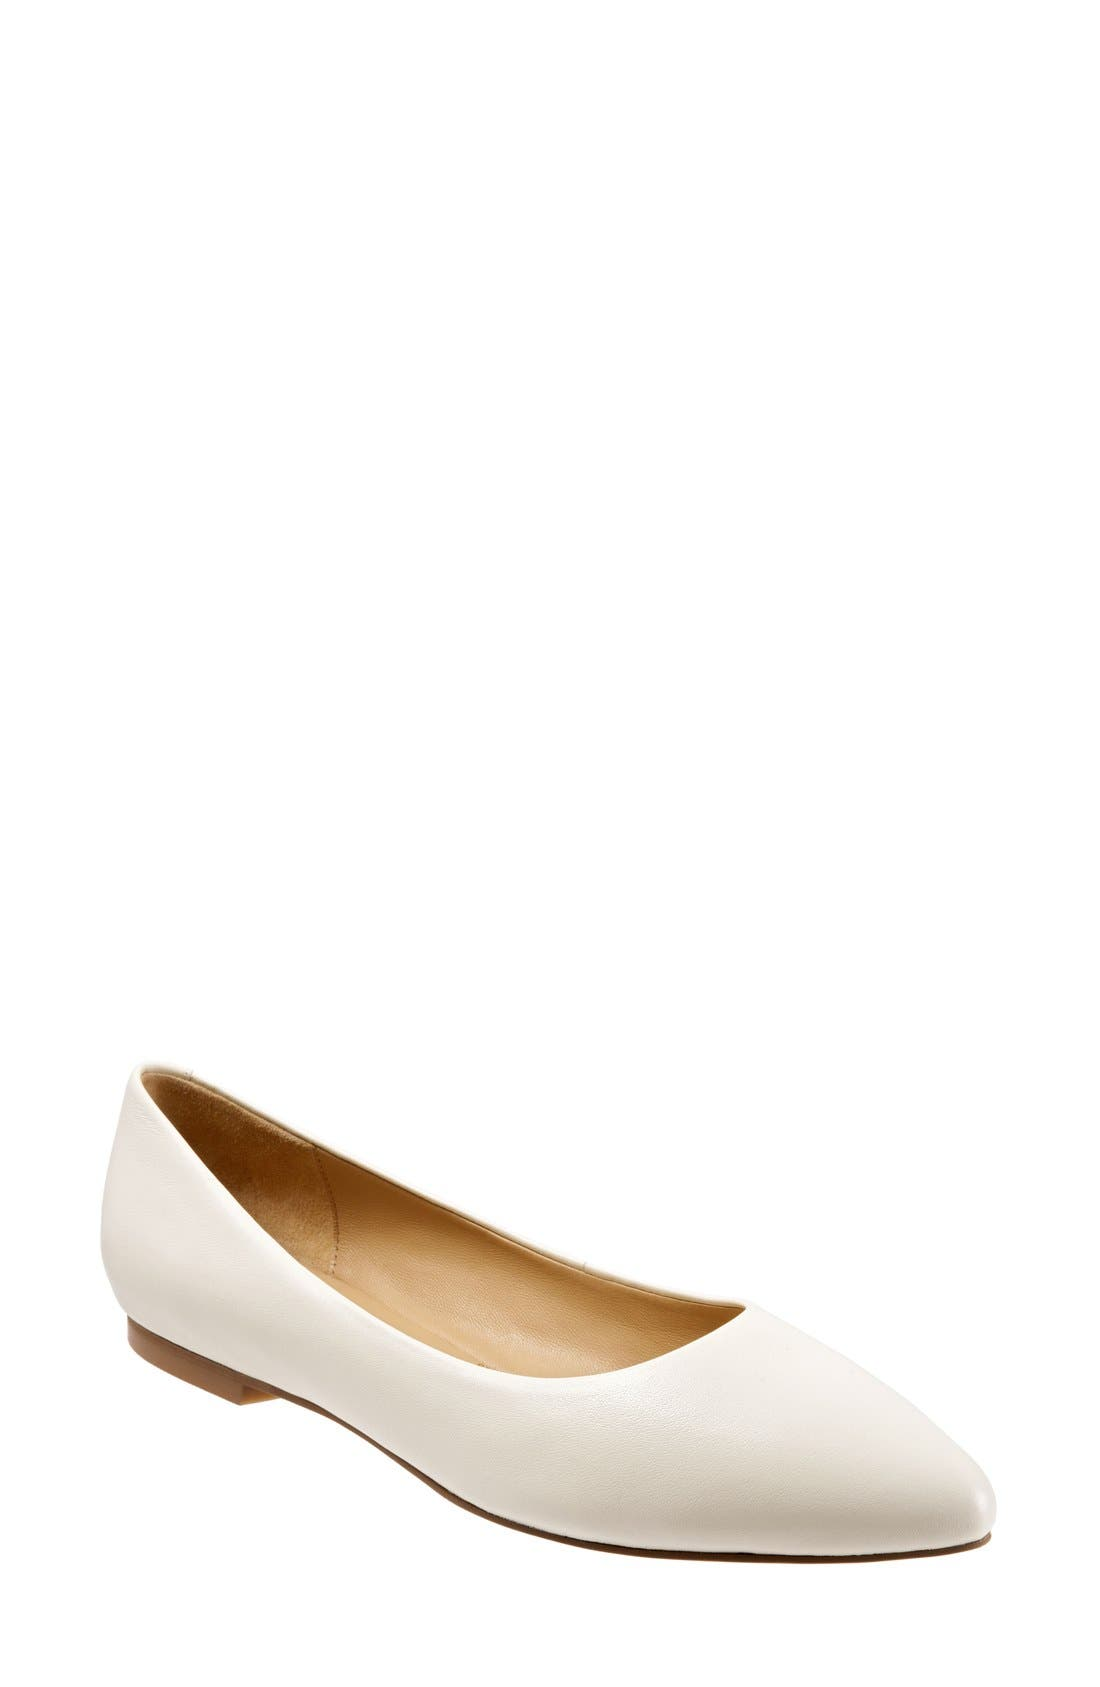 Main Image - Trotters Estee Pointed Toe Flat (Women)